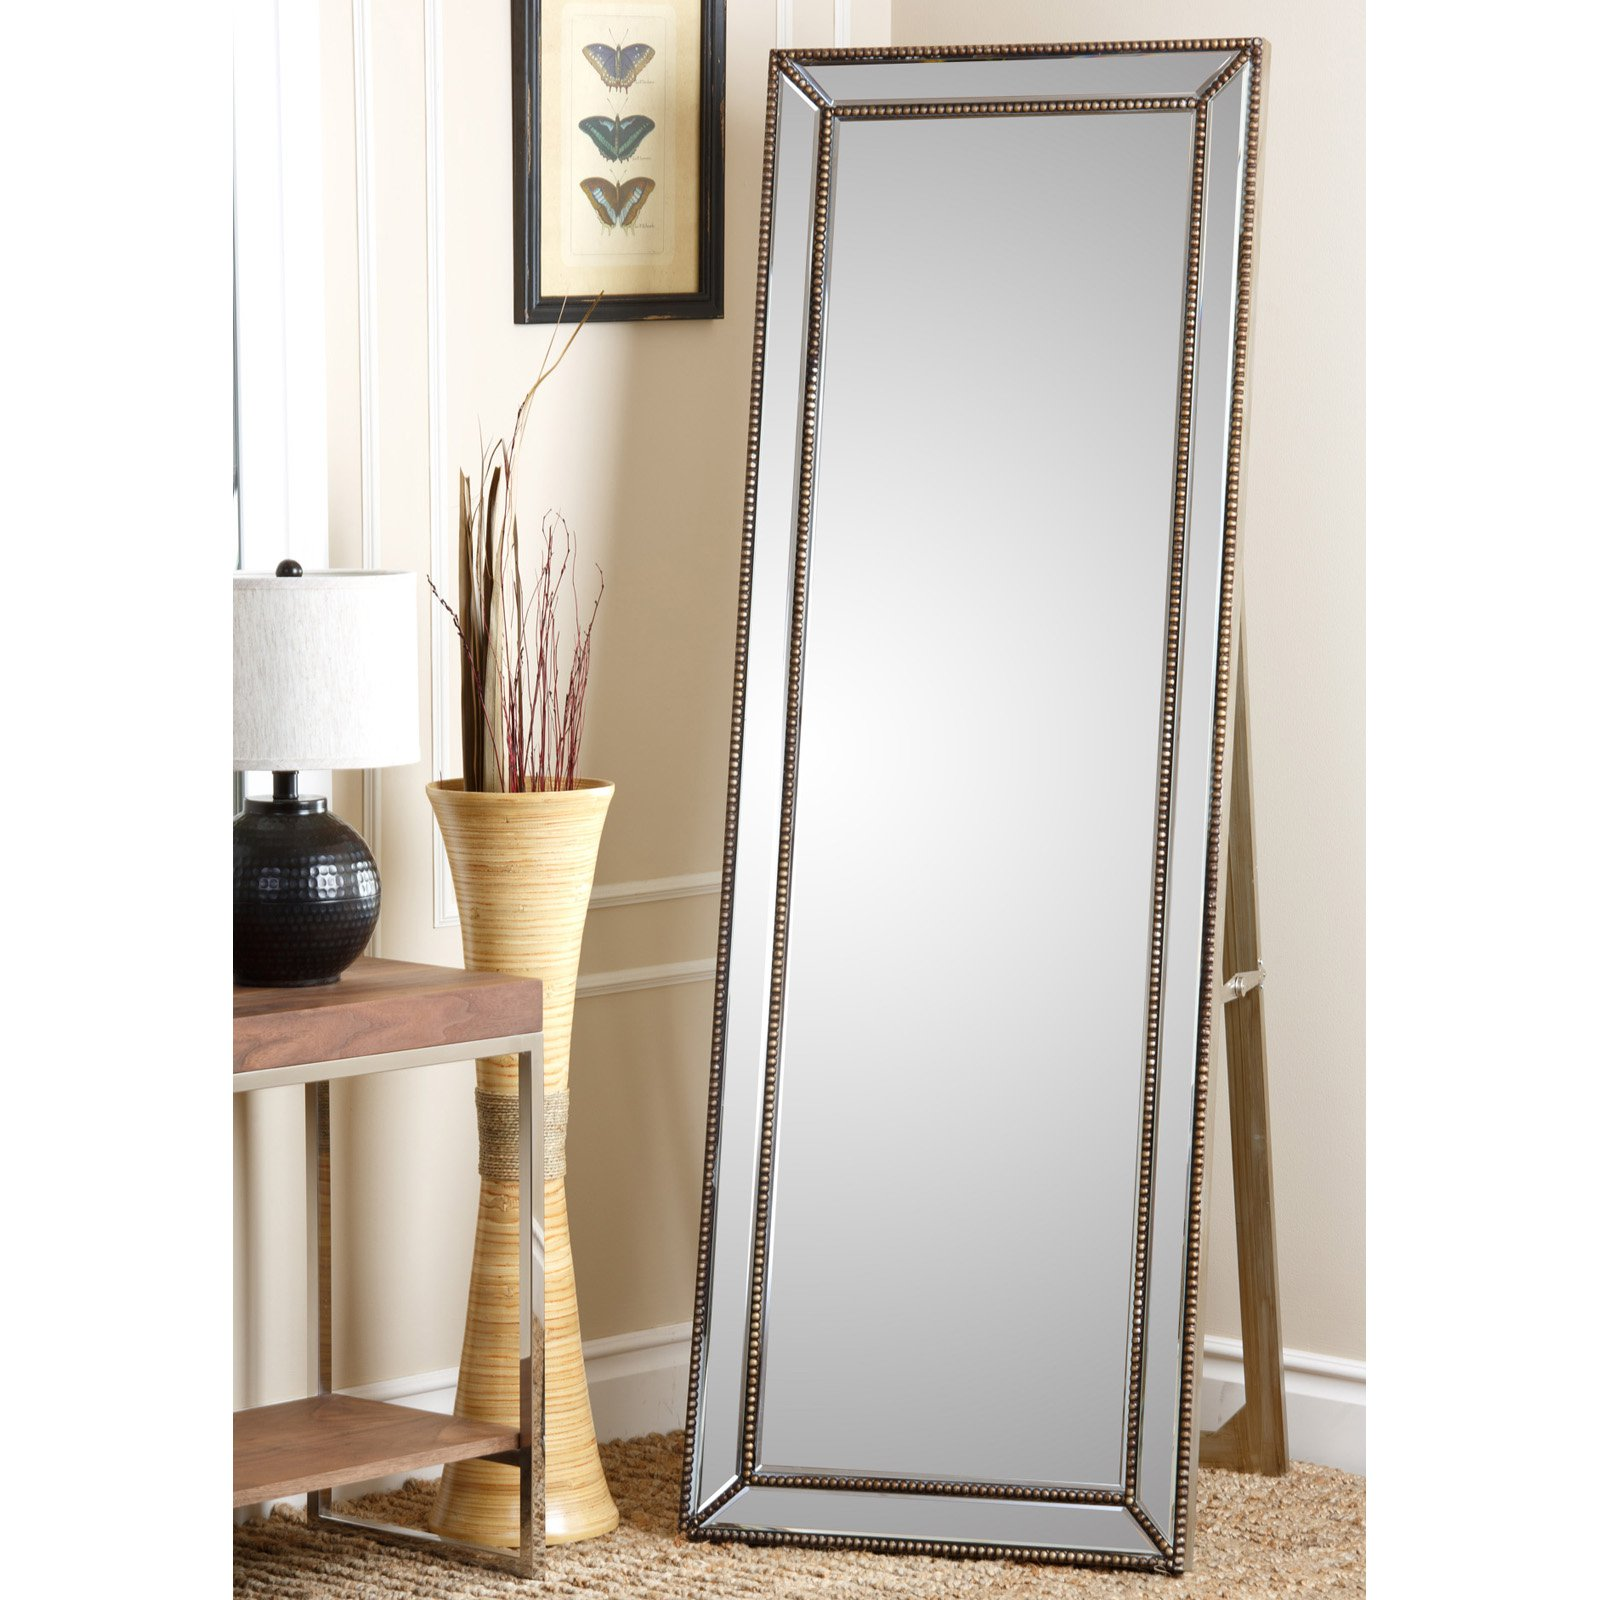 Cosmic Tarnished Gold Rectangle Cheval Floor Mirror by Abbyson Living